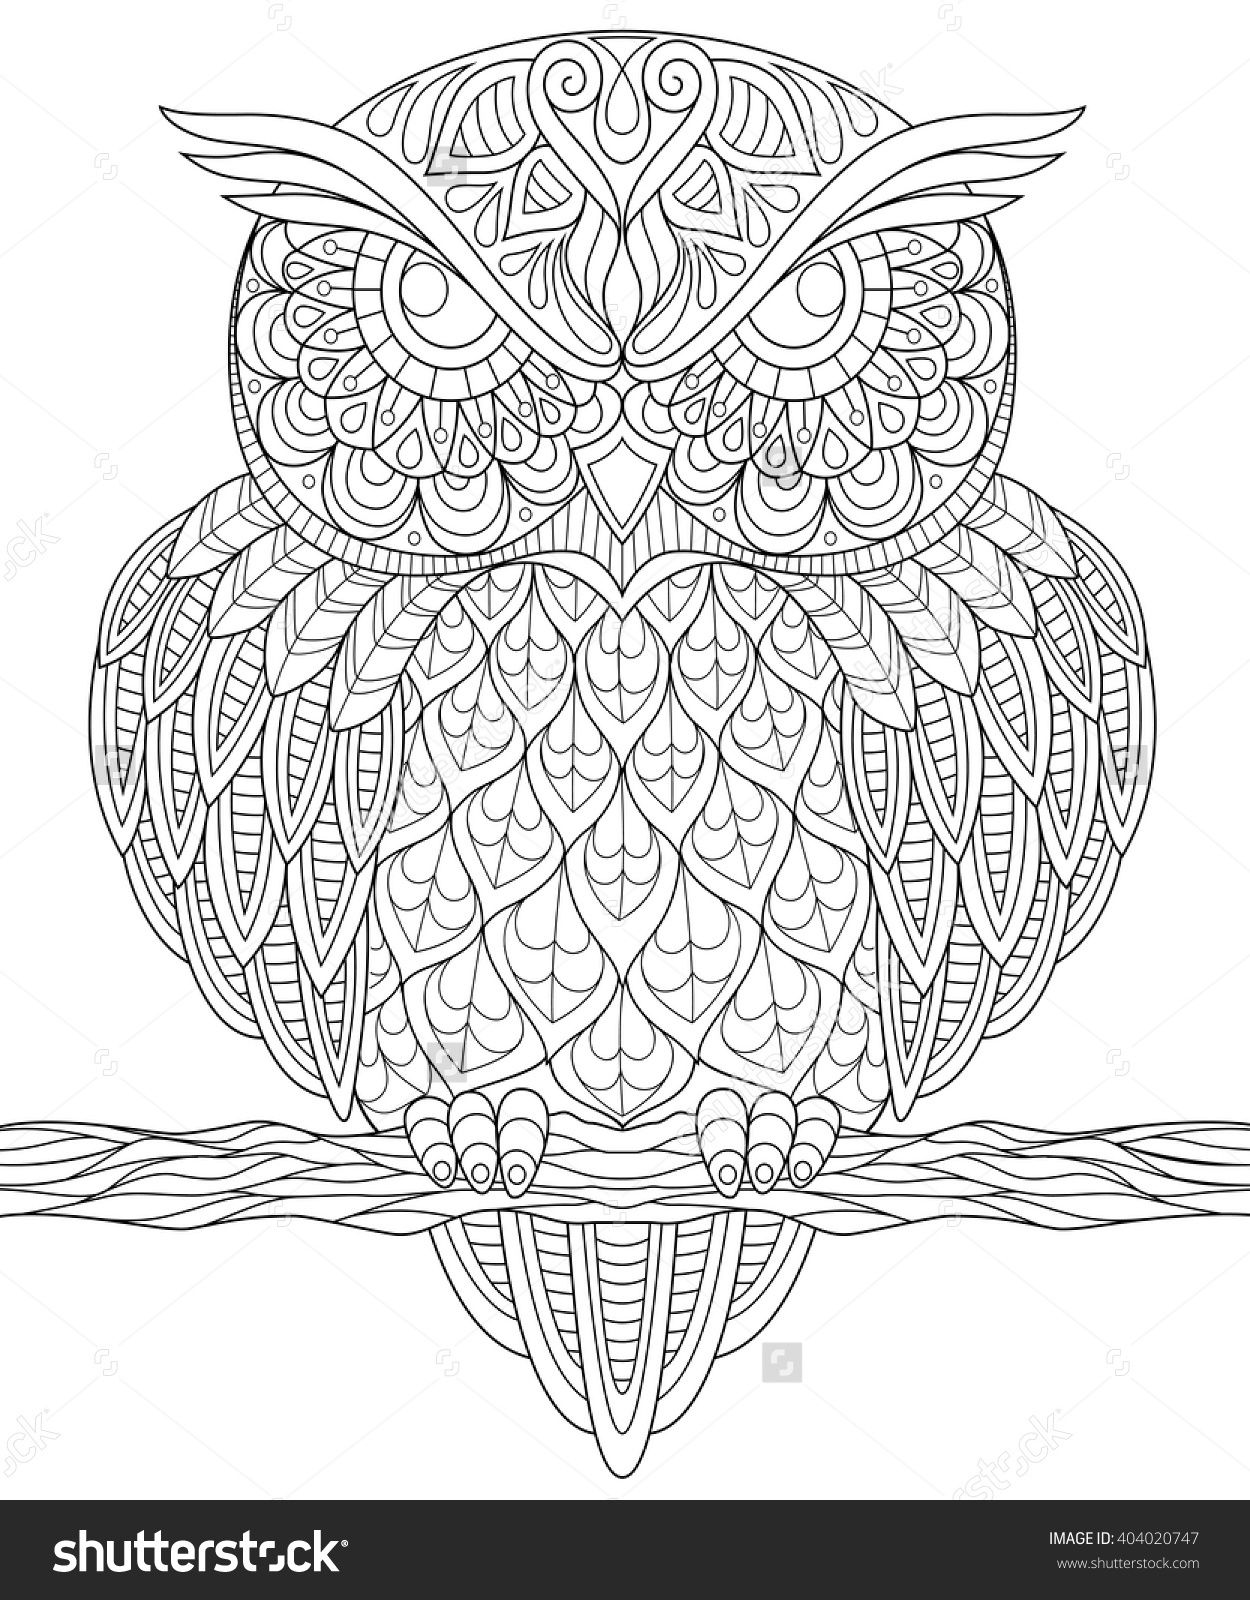 Owl Adult Antistress Coloring Page Black And White Hand Drawn